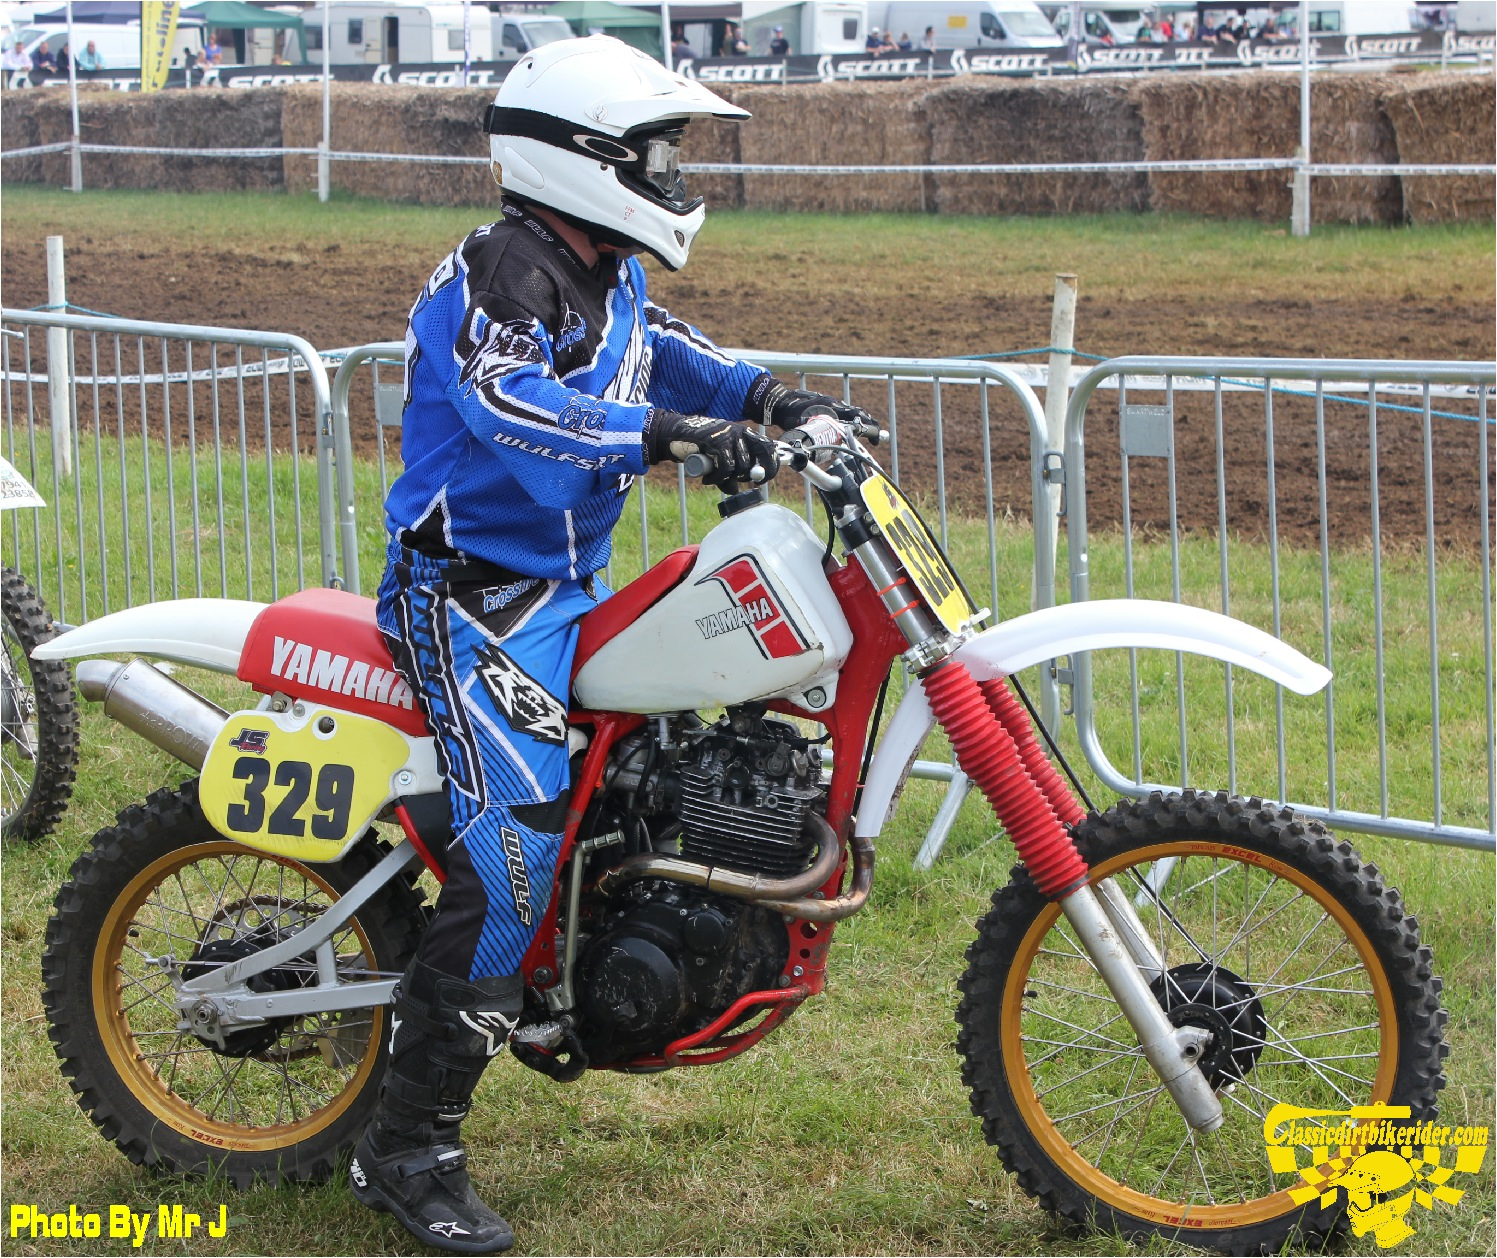 king of the castle 2015 photos Farleigh Castle twinshock motocross classicdirtbikerider.com 21